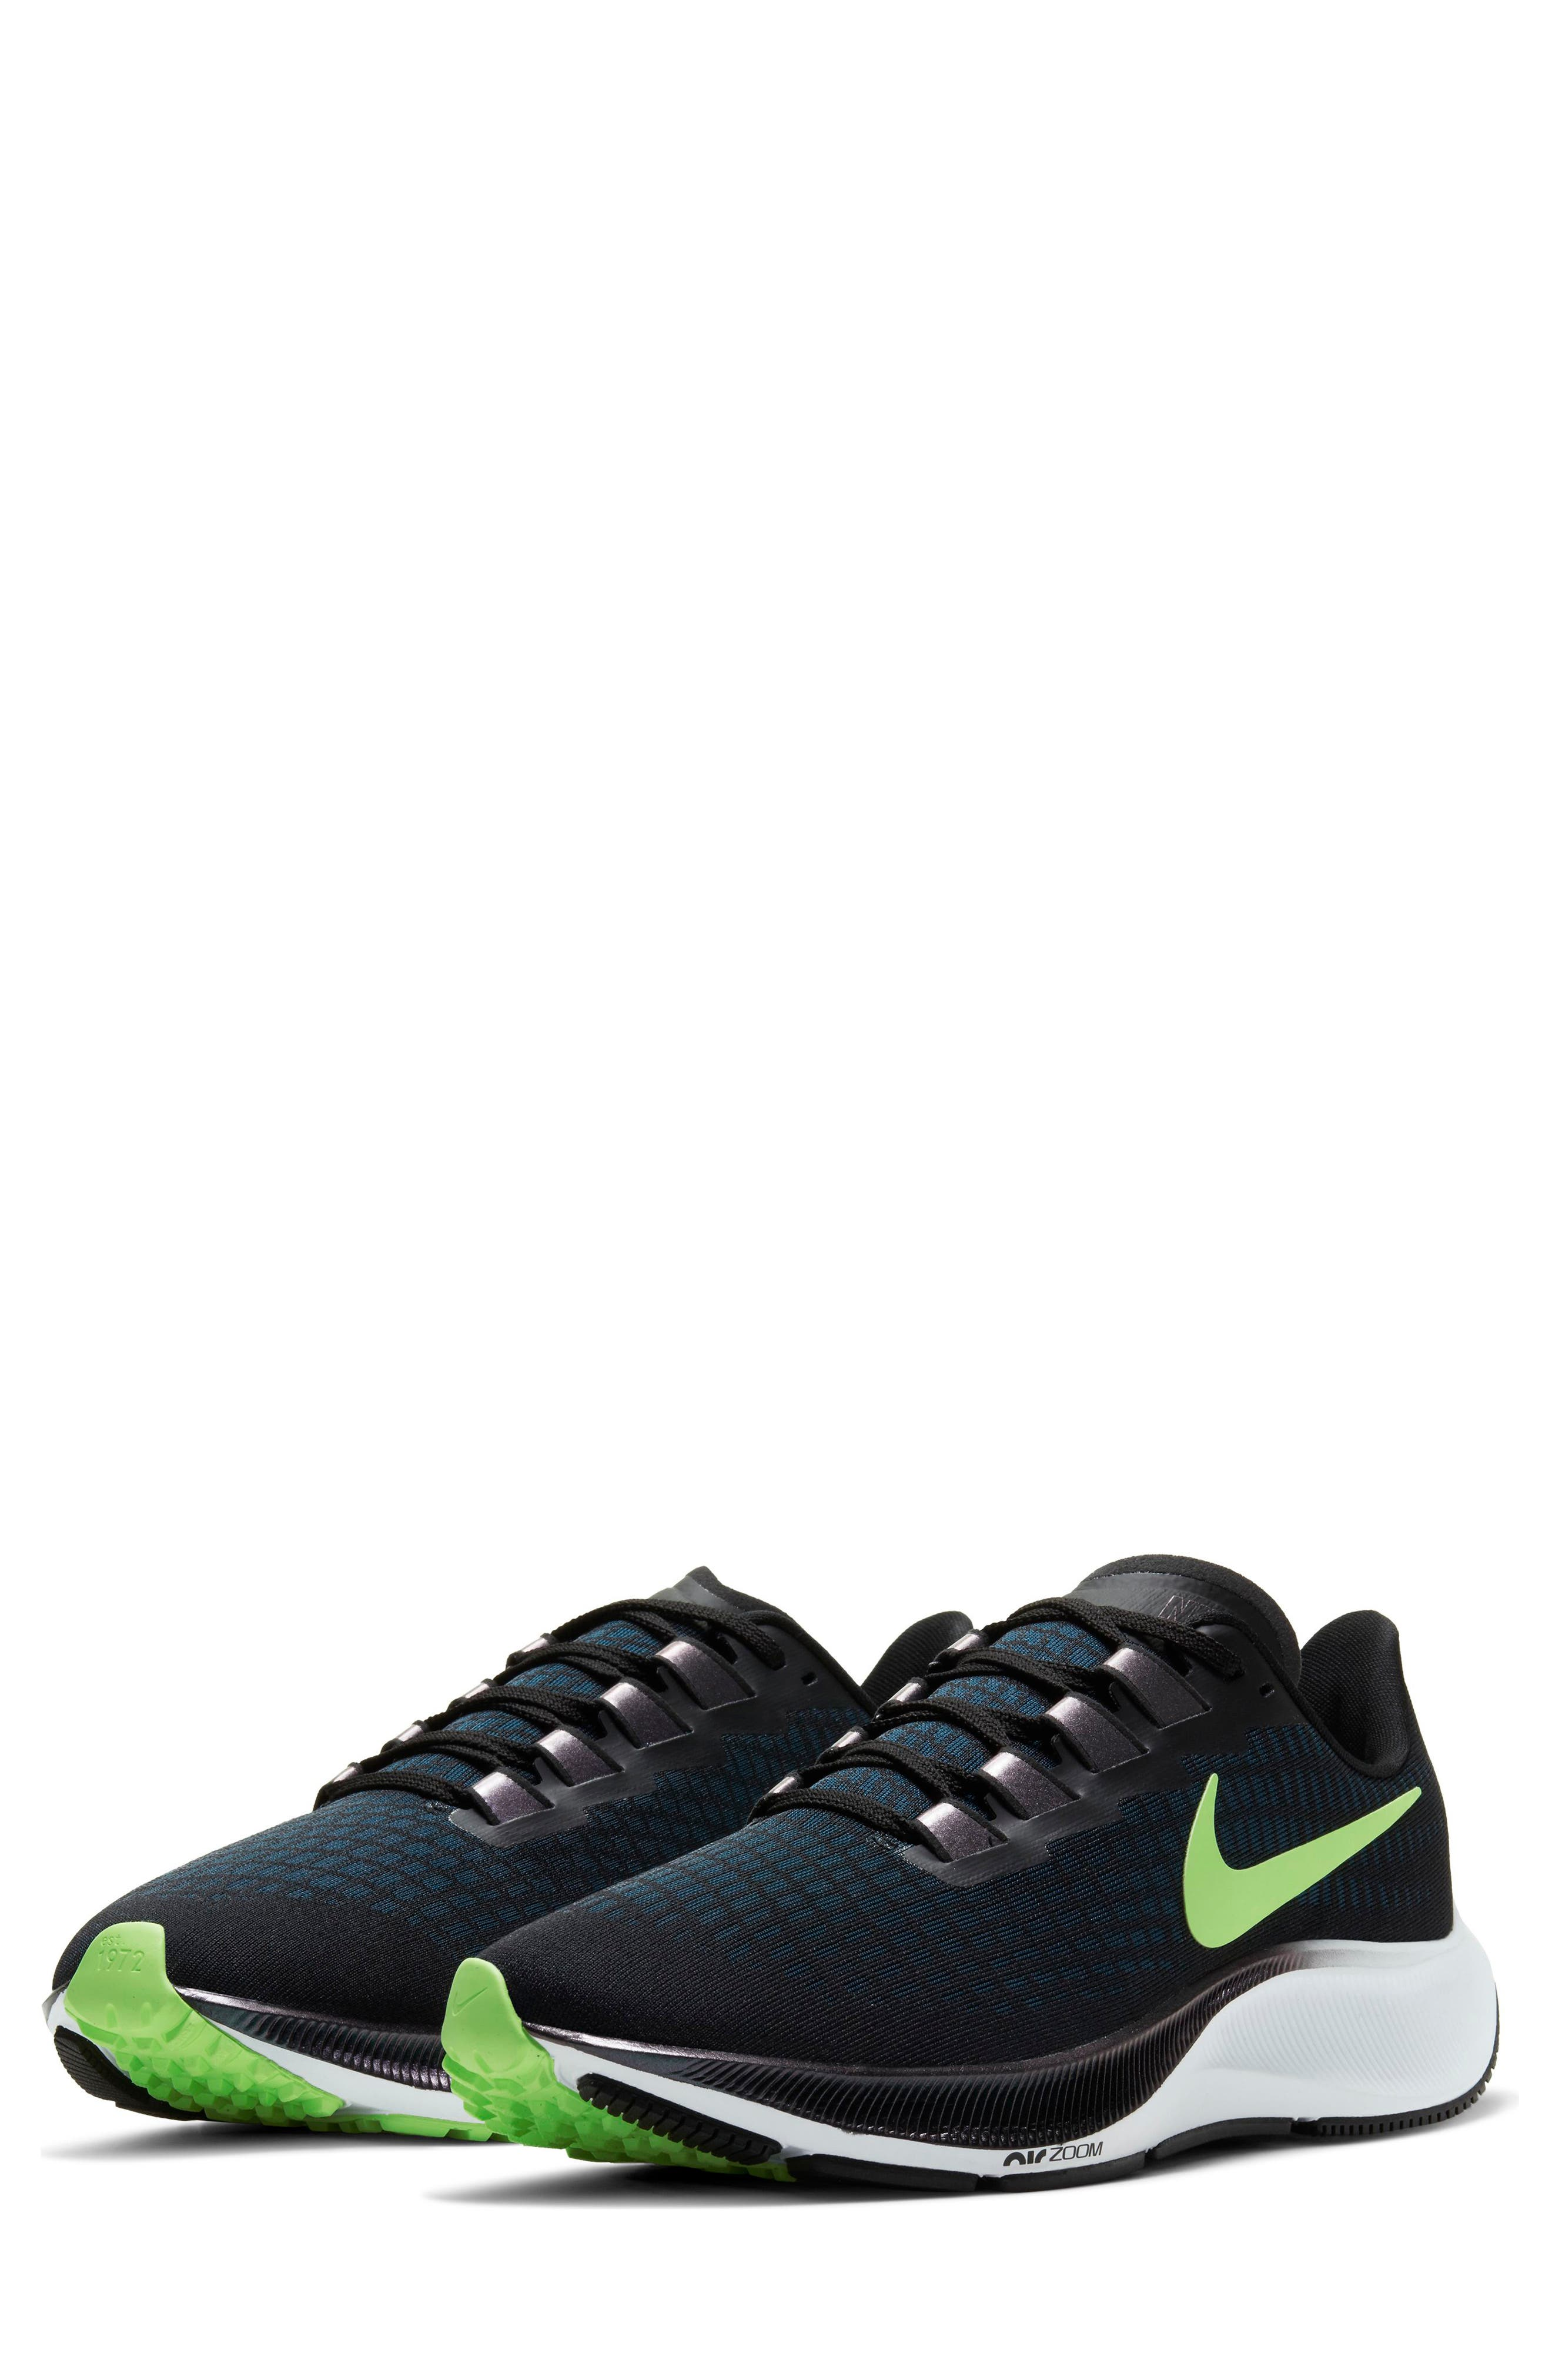 nike air zoom shoes